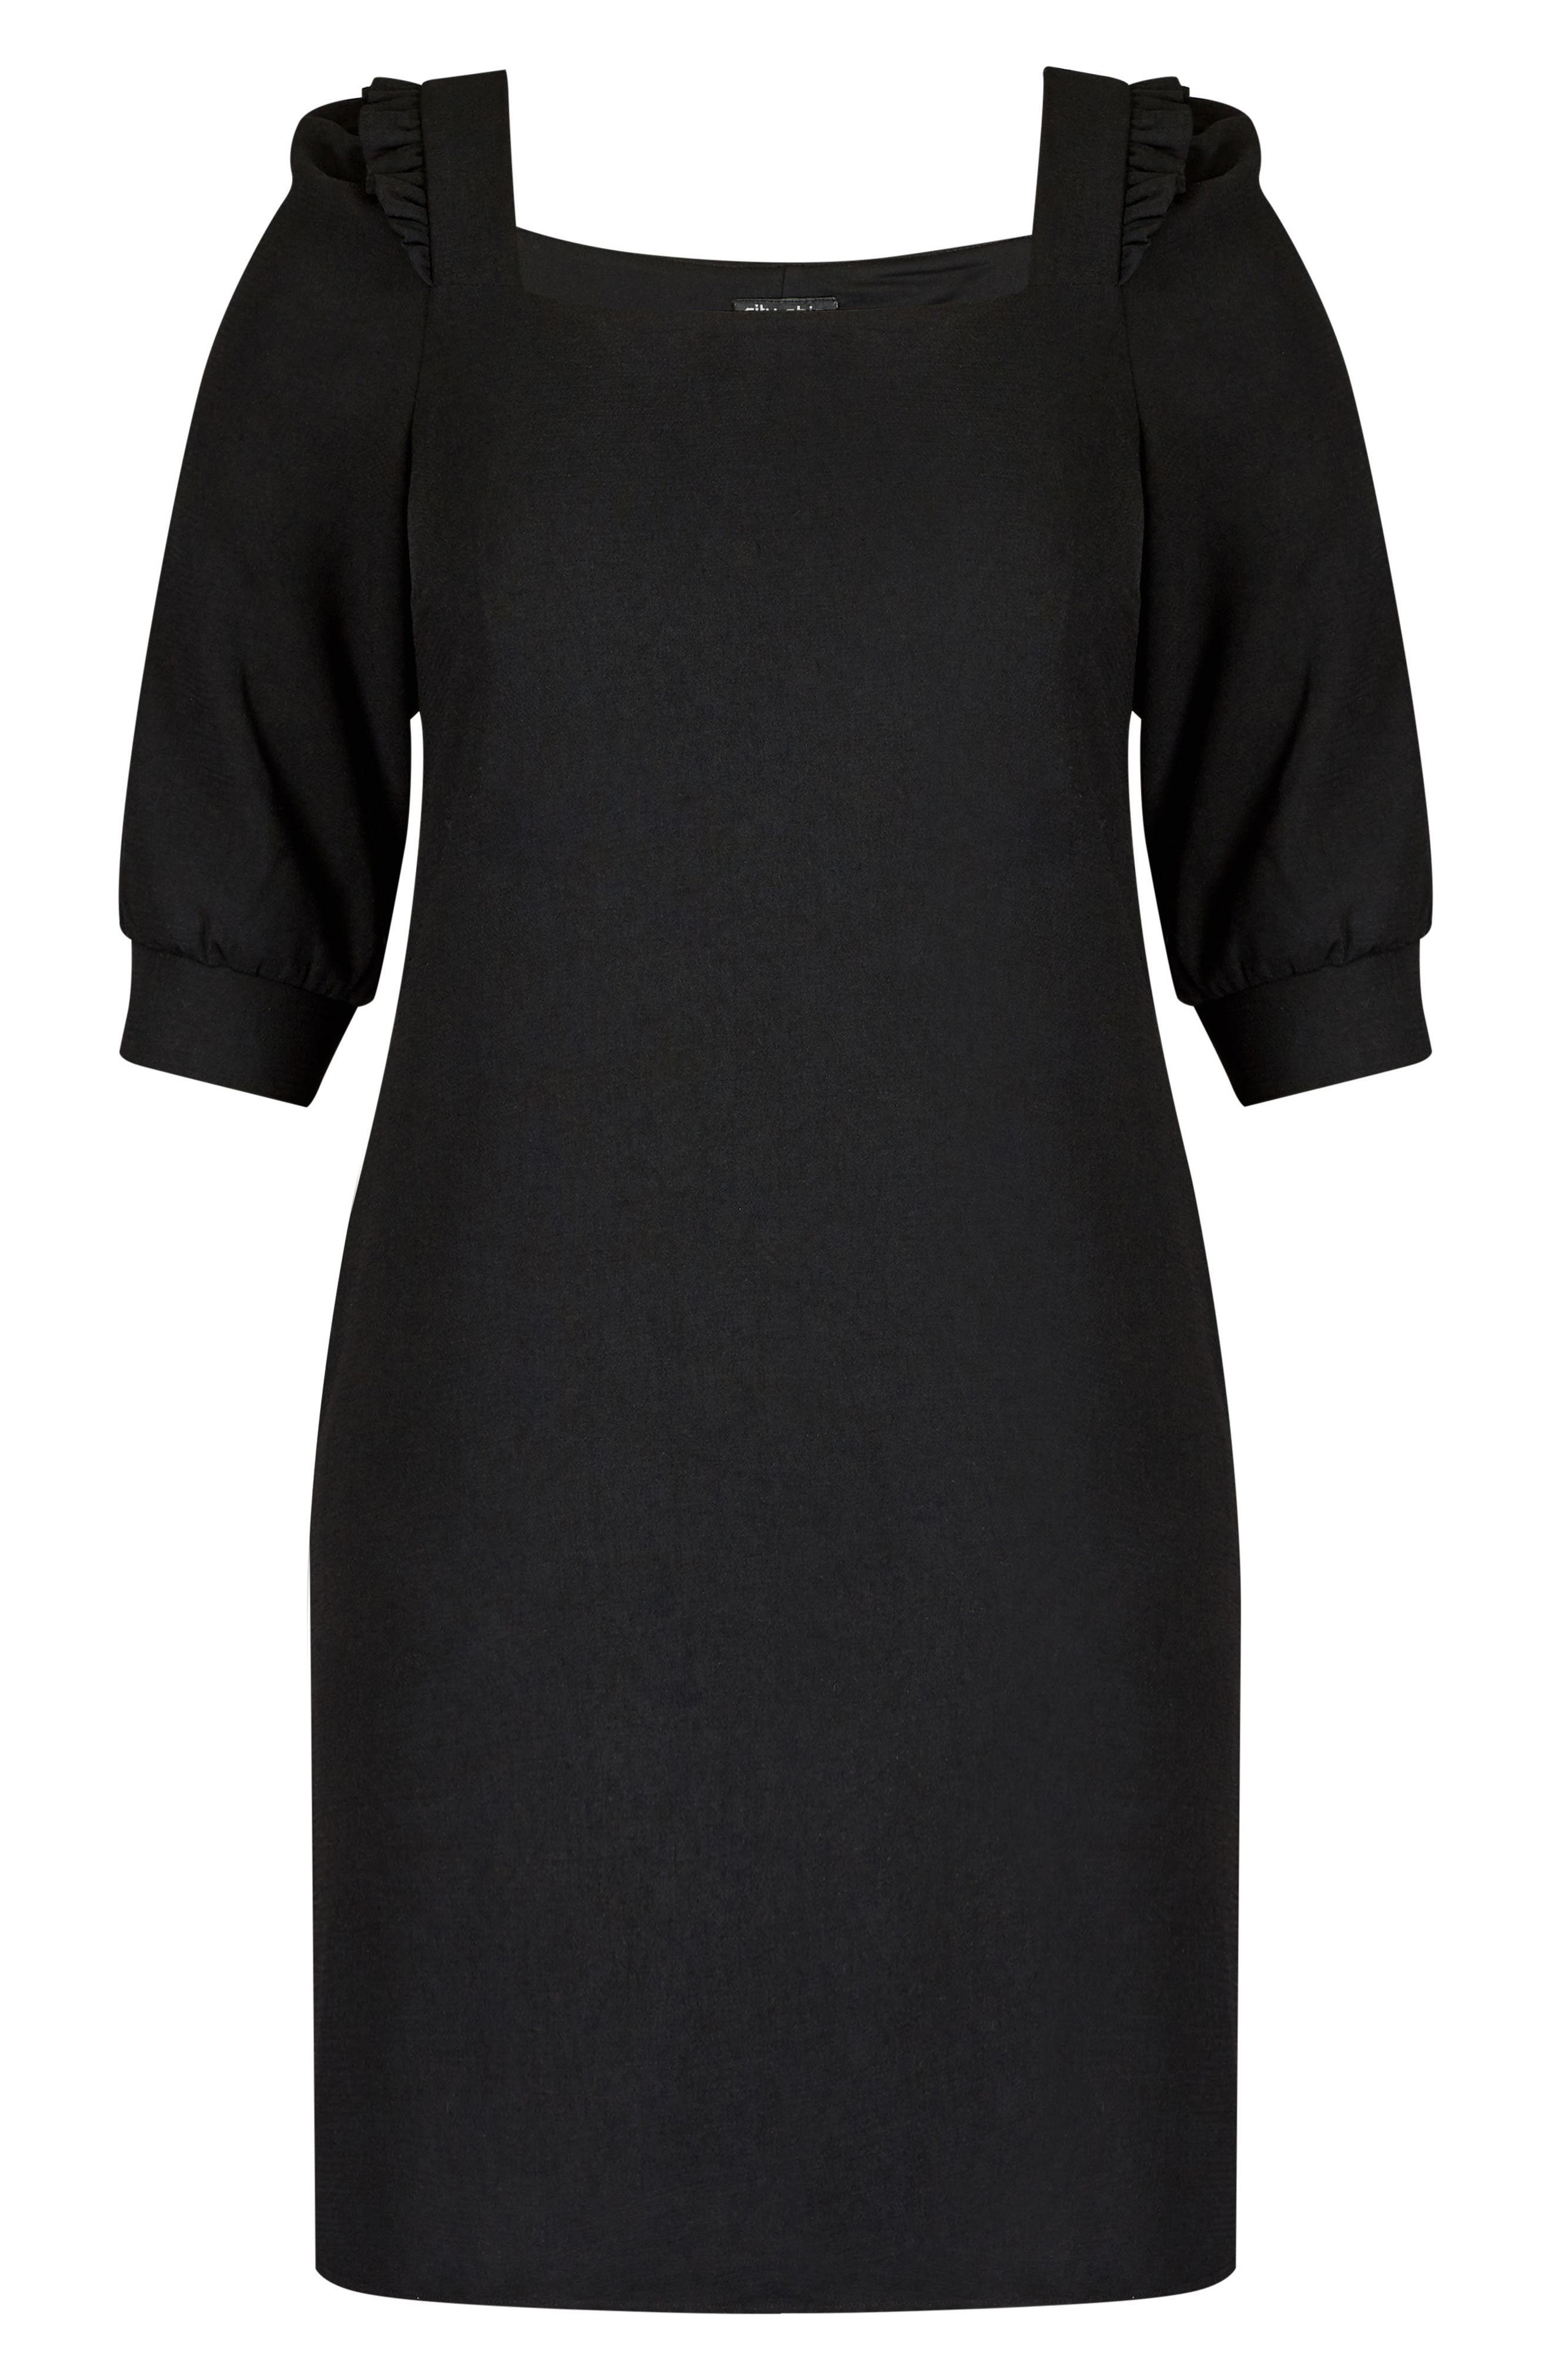 Darling Square Neck Dress,                             Alternate thumbnail 3, color,                             Black